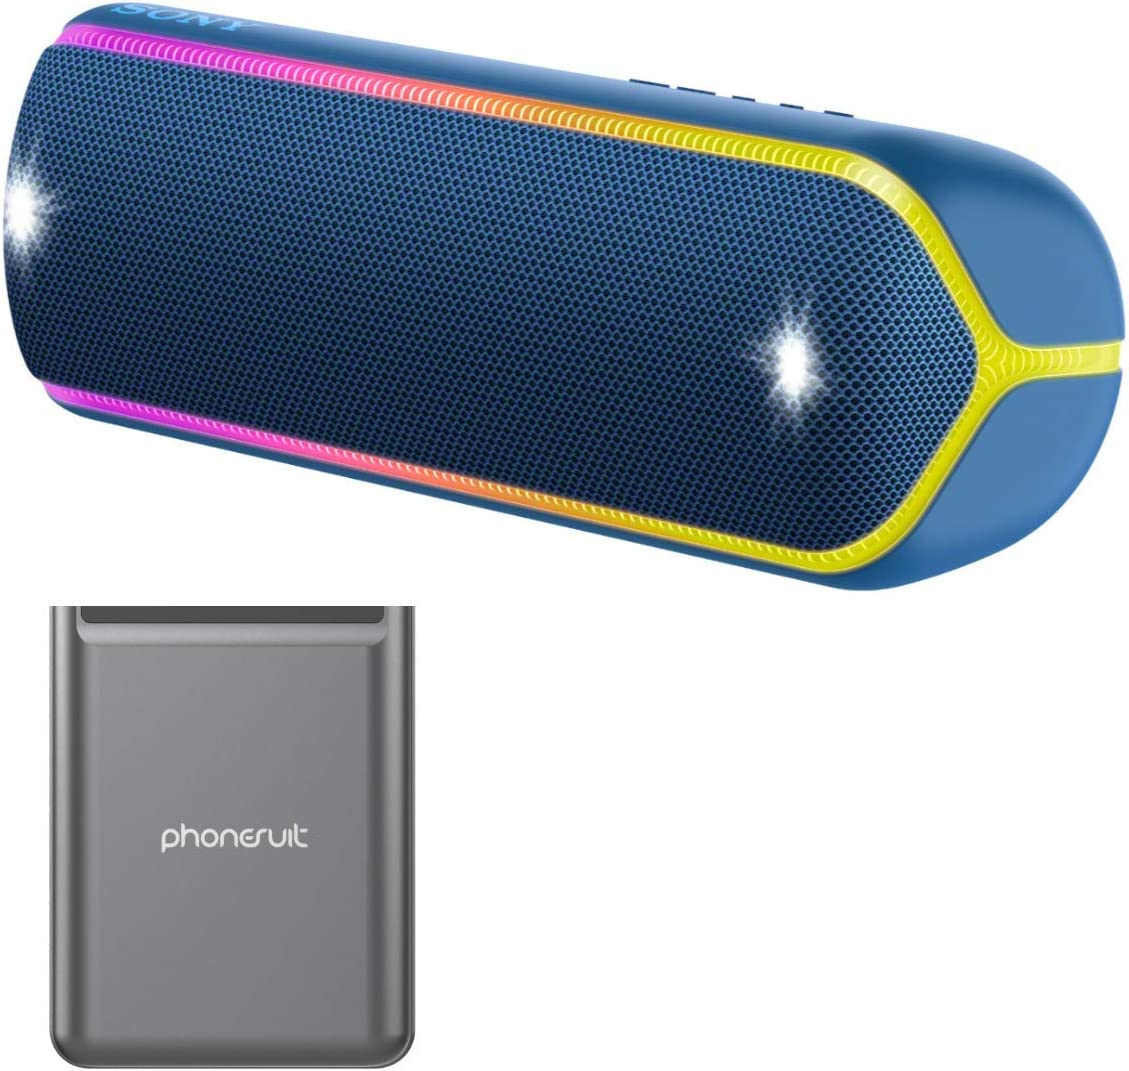 Sony XB32 Extra Bass Portable Bluetooth Speaker Blue with Ultra Portable 5,000 mAh Battery Pack 2 Items